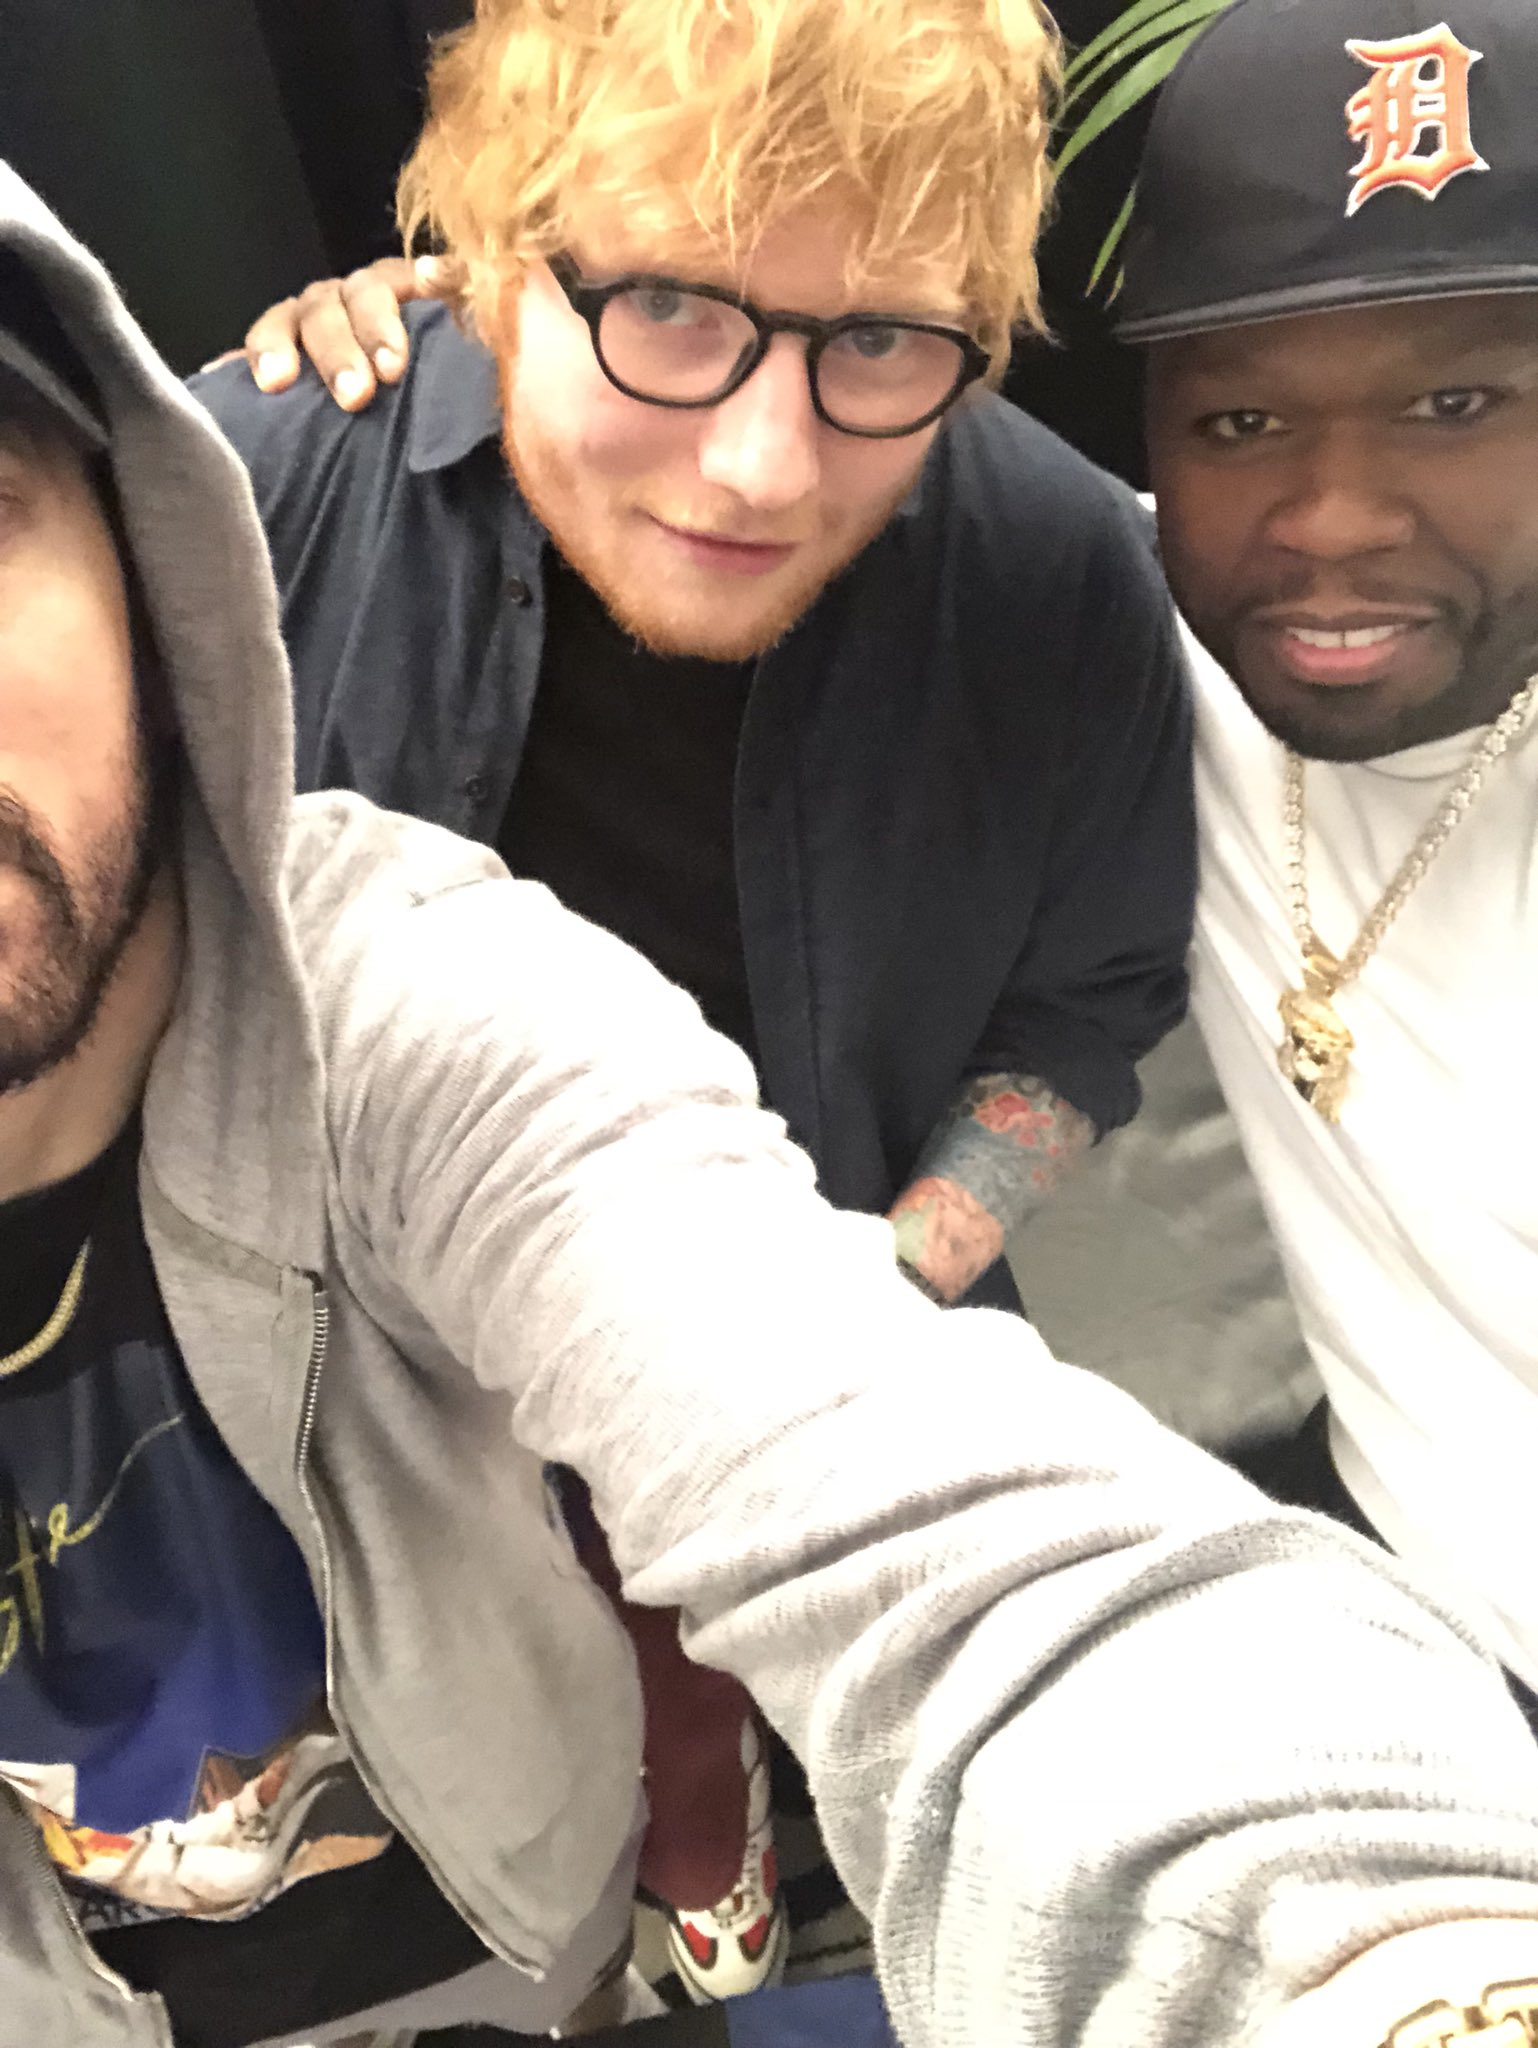 Thank you @edsheeran and @50cent for joining my collection of legendary selfies #selfie�� https://t.co/Zfk7QQIskk